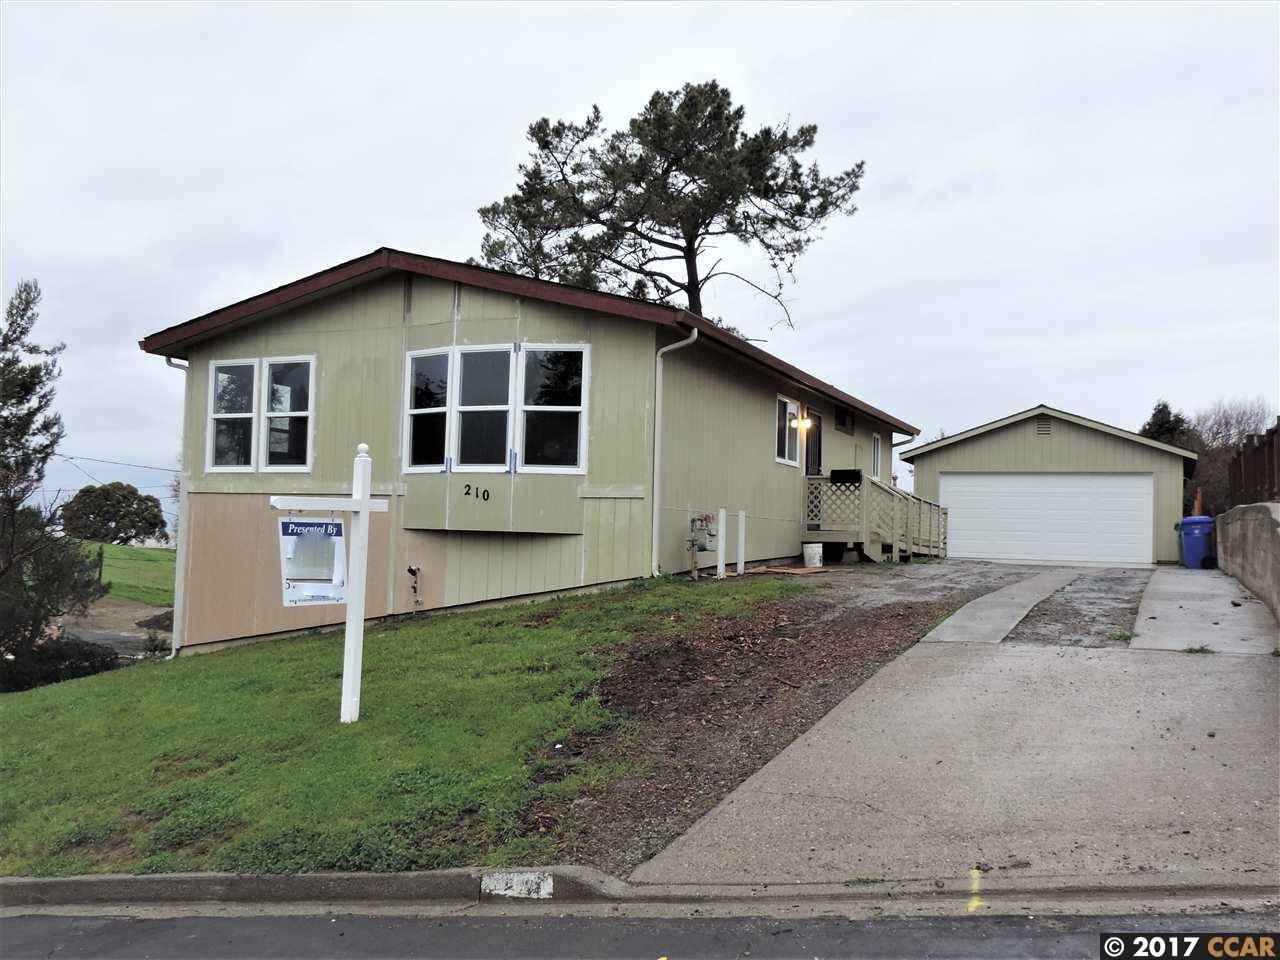 210 2ND ST, RODEO, CA 94572